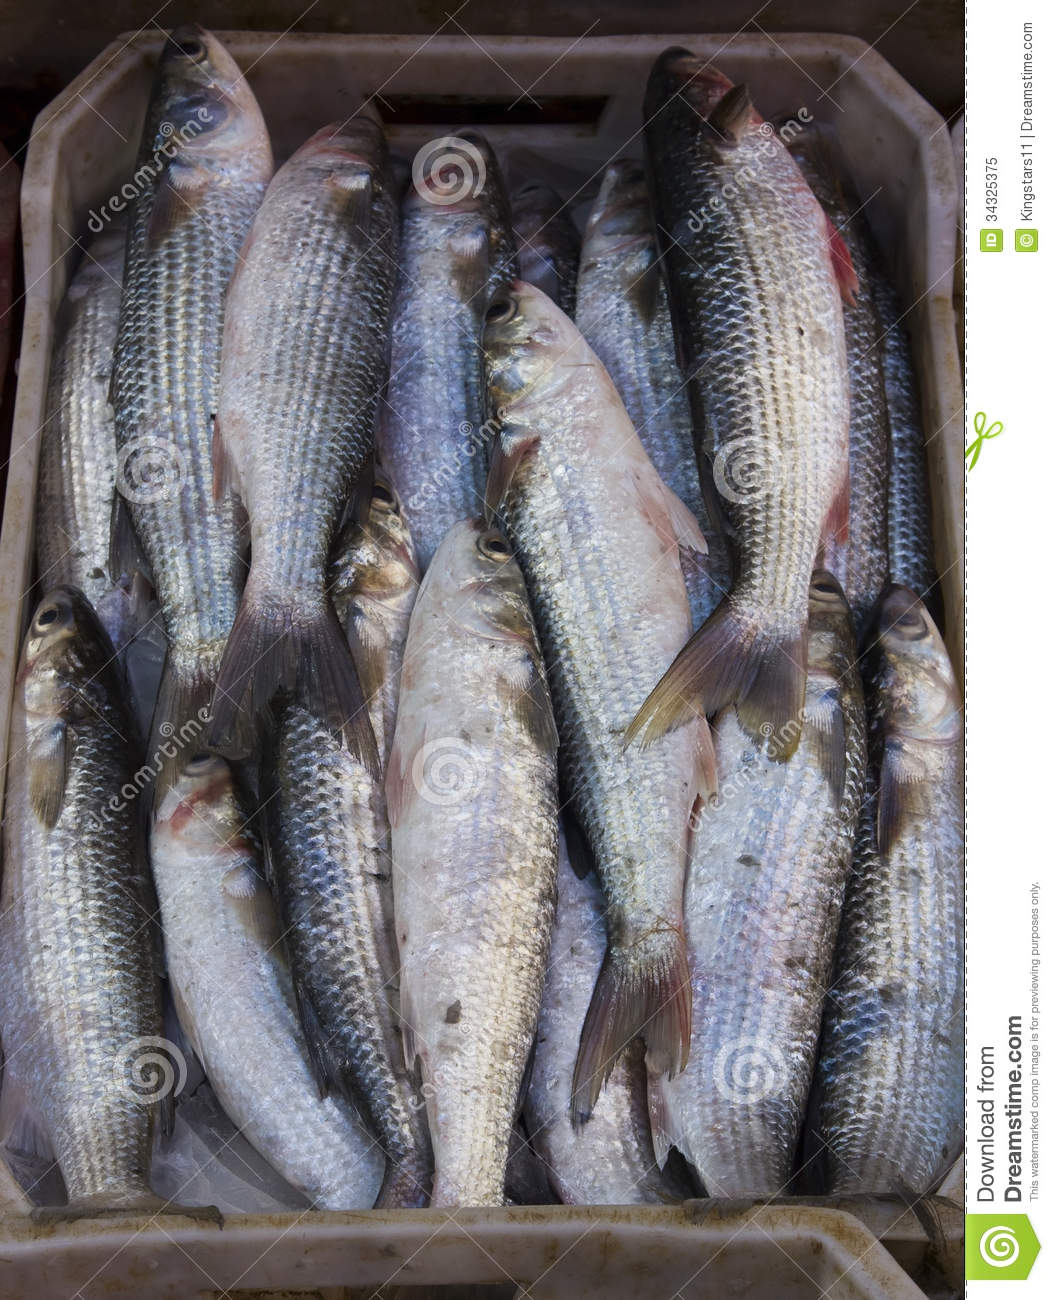 Flathead mullet fish stock image image of healthy marine for Eating mullet fish